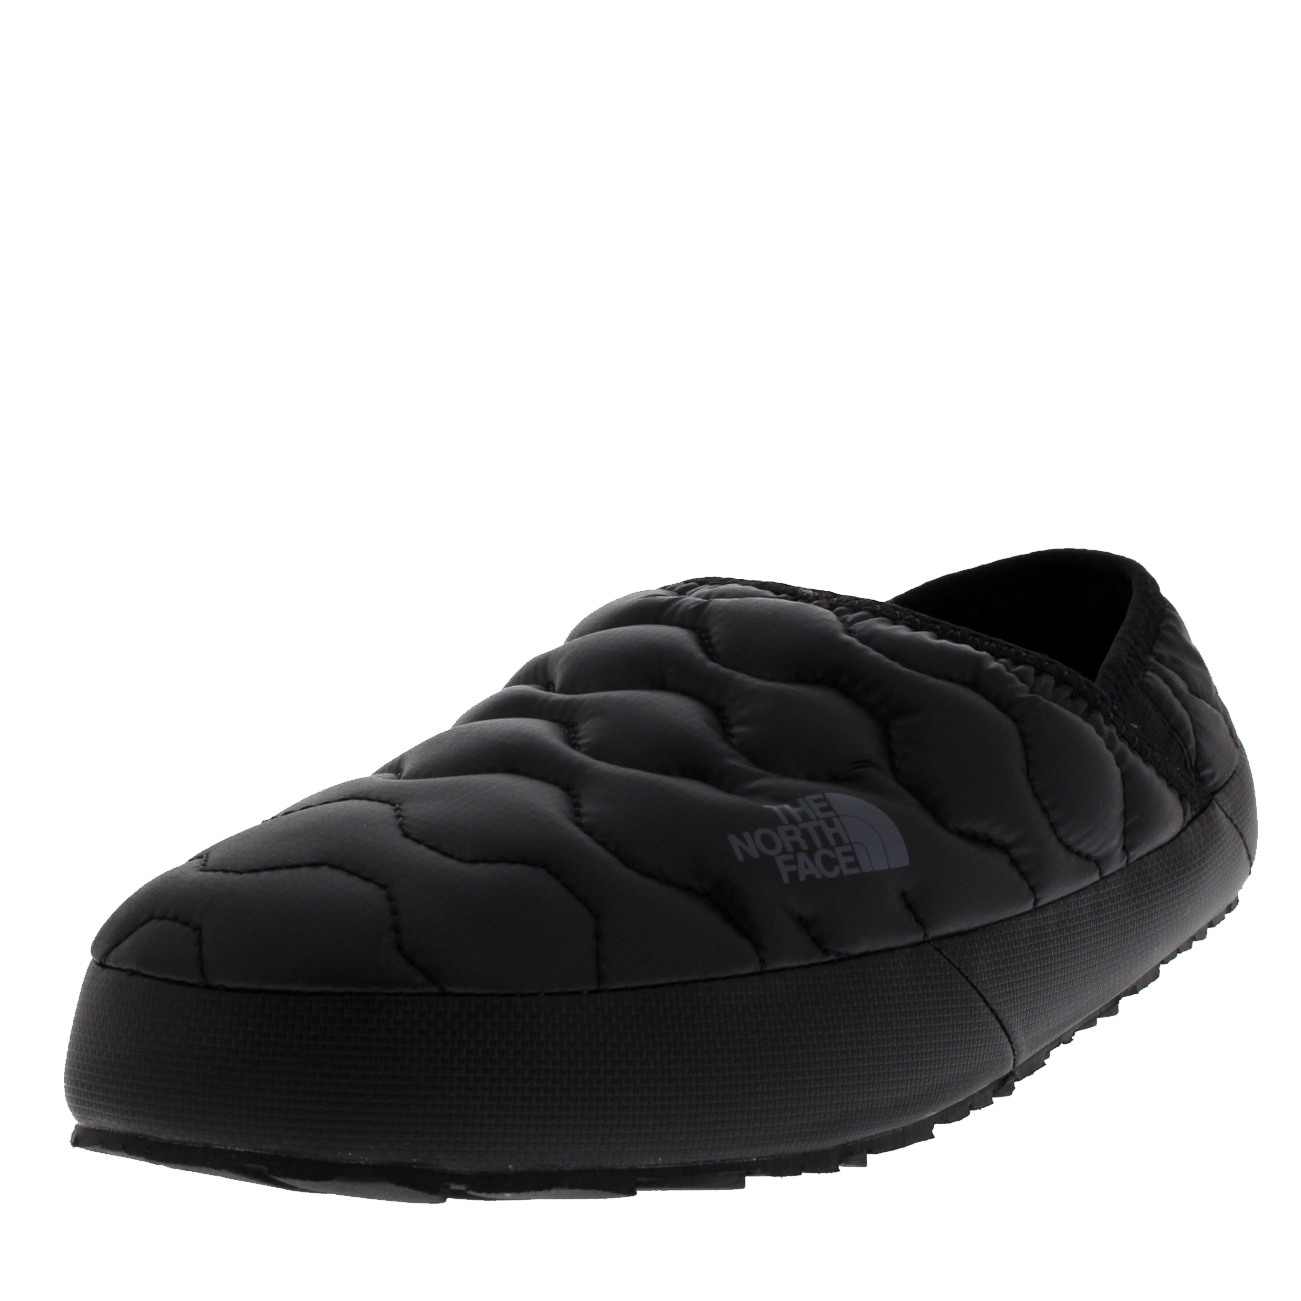 Herren The North Face Thermoball Thermoball Thermoball Traction Mule IV Winter Hausschuhe EU 40.5-47 d3bf4f